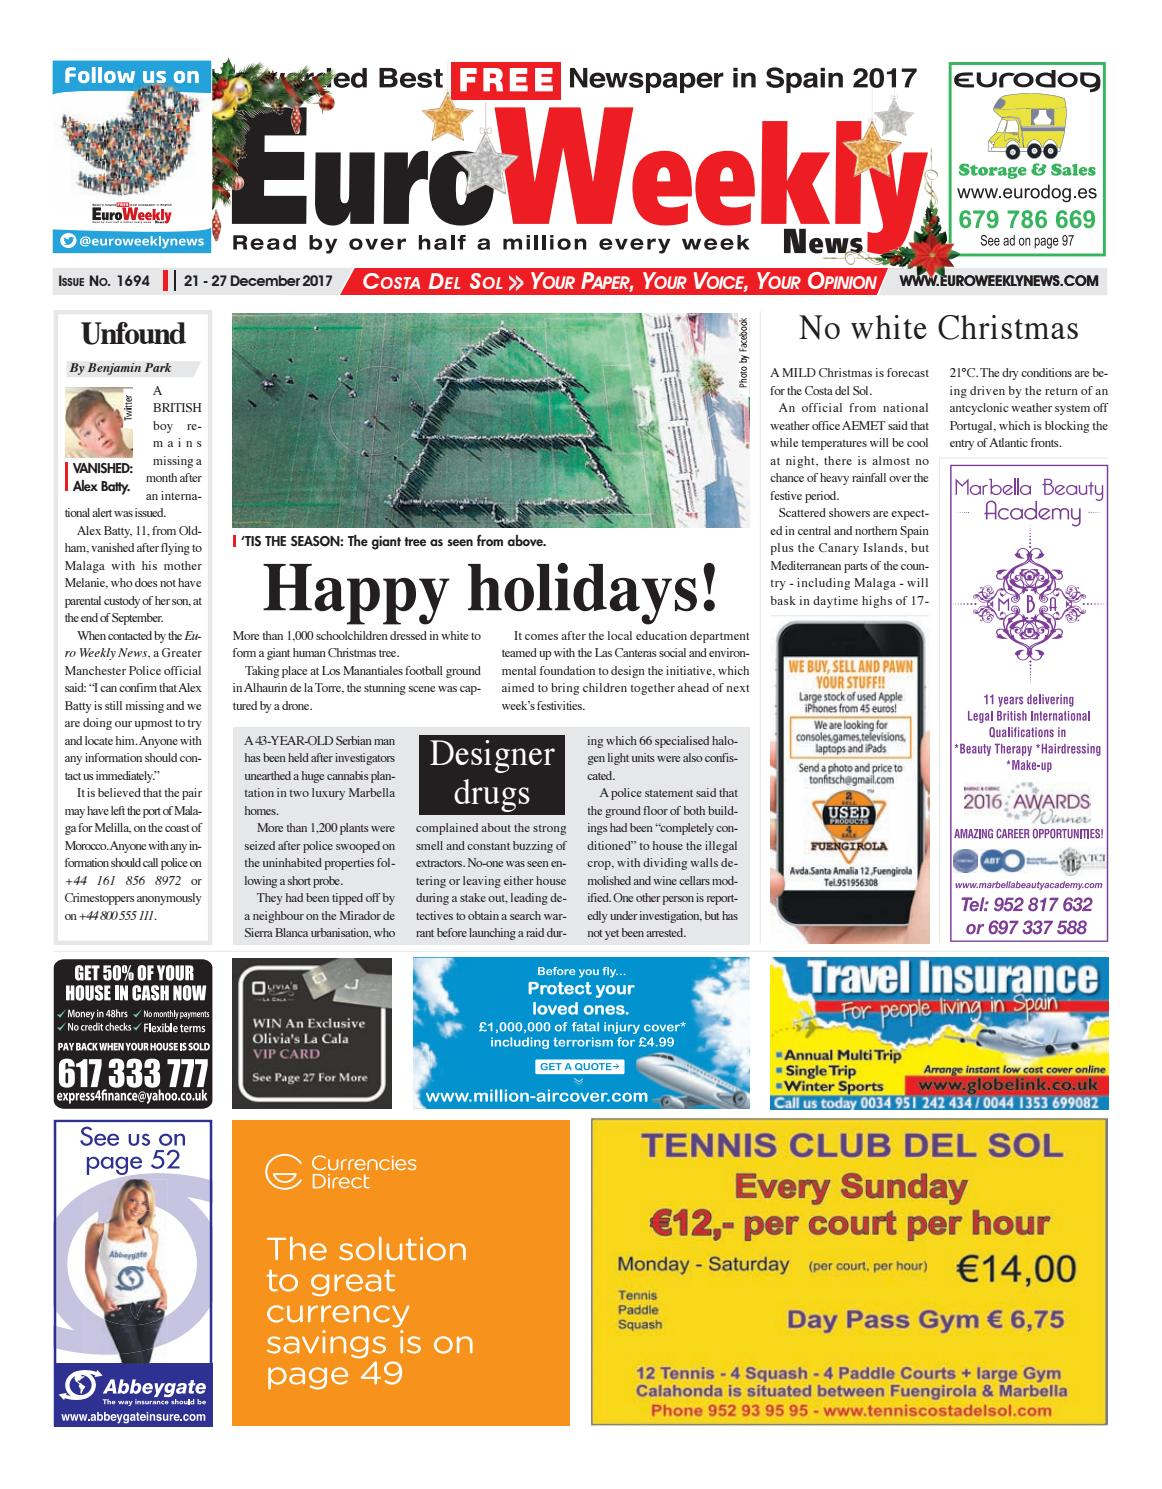 Euro Weekly News - Costa del Sol 21 - 27 December 2017 Issue 1694 by Euro  Weekly News Media S.A. - issuu